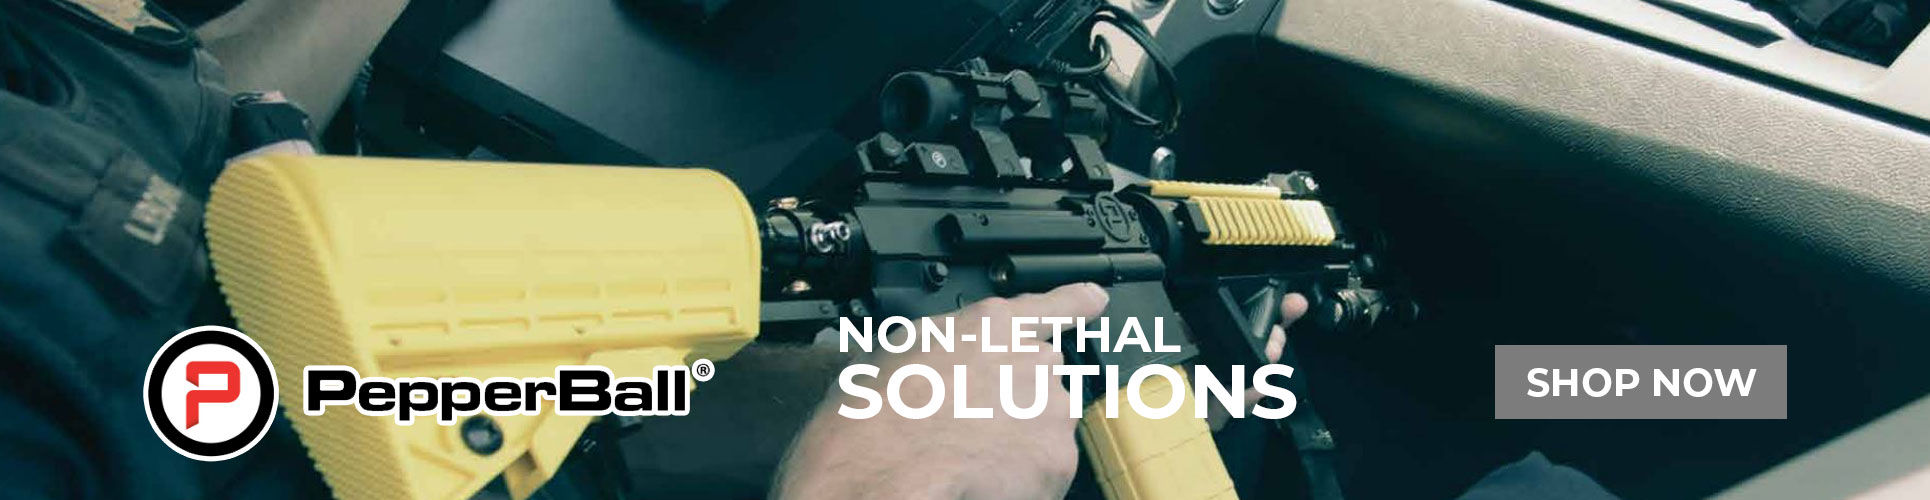 Shop Pepperball Non-Lethal Products